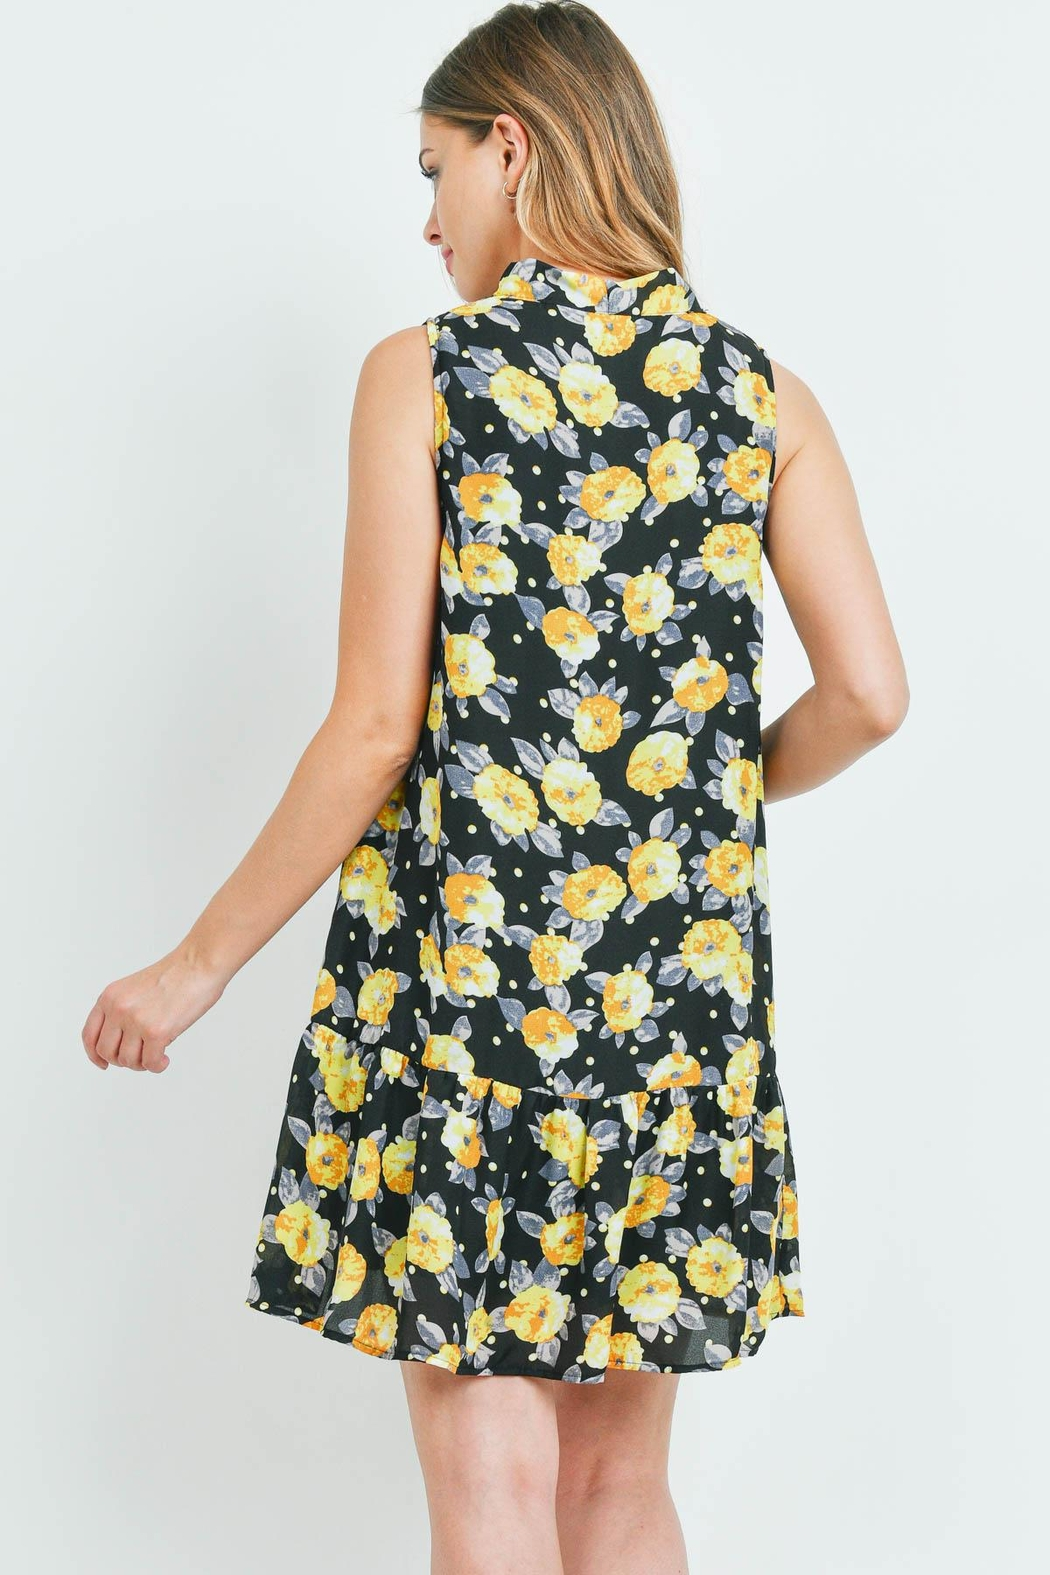 Riah Fashion Black-With Flower-Print Dress - Front Full Image